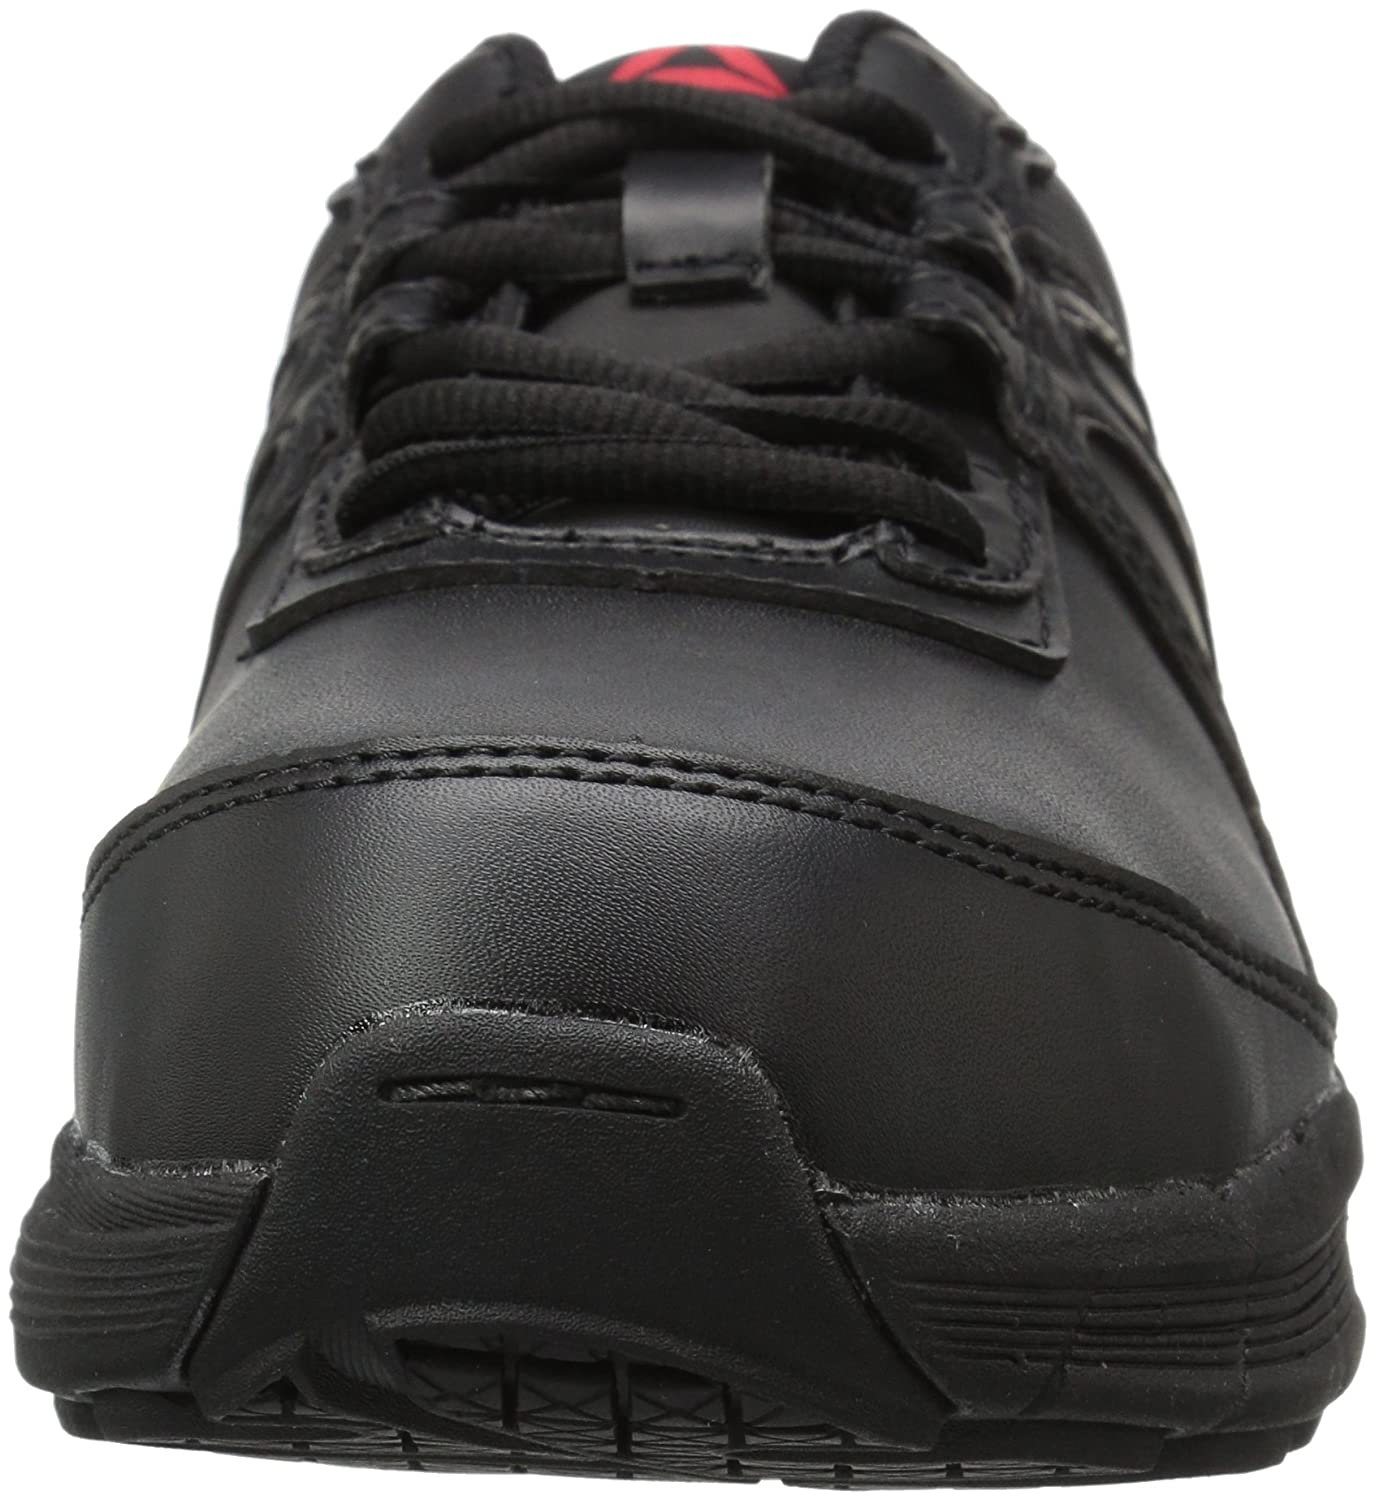 Reebok Work Mens Guide Work RB3501 Industrial and Construction Shoe